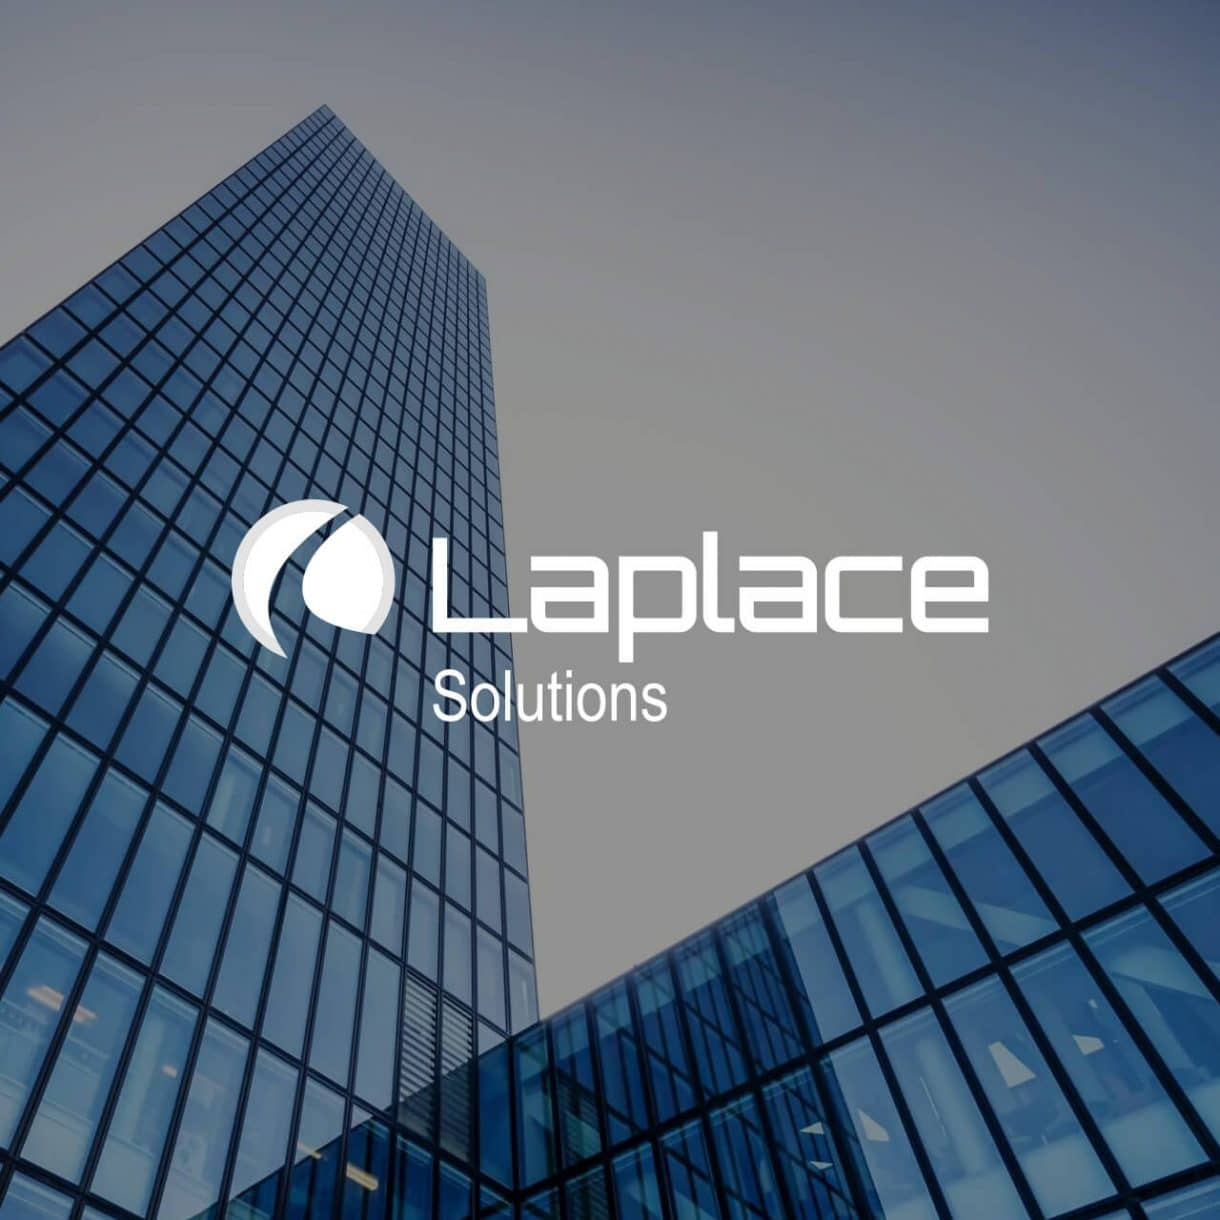 Our Clients - Laplace Solutions Logo